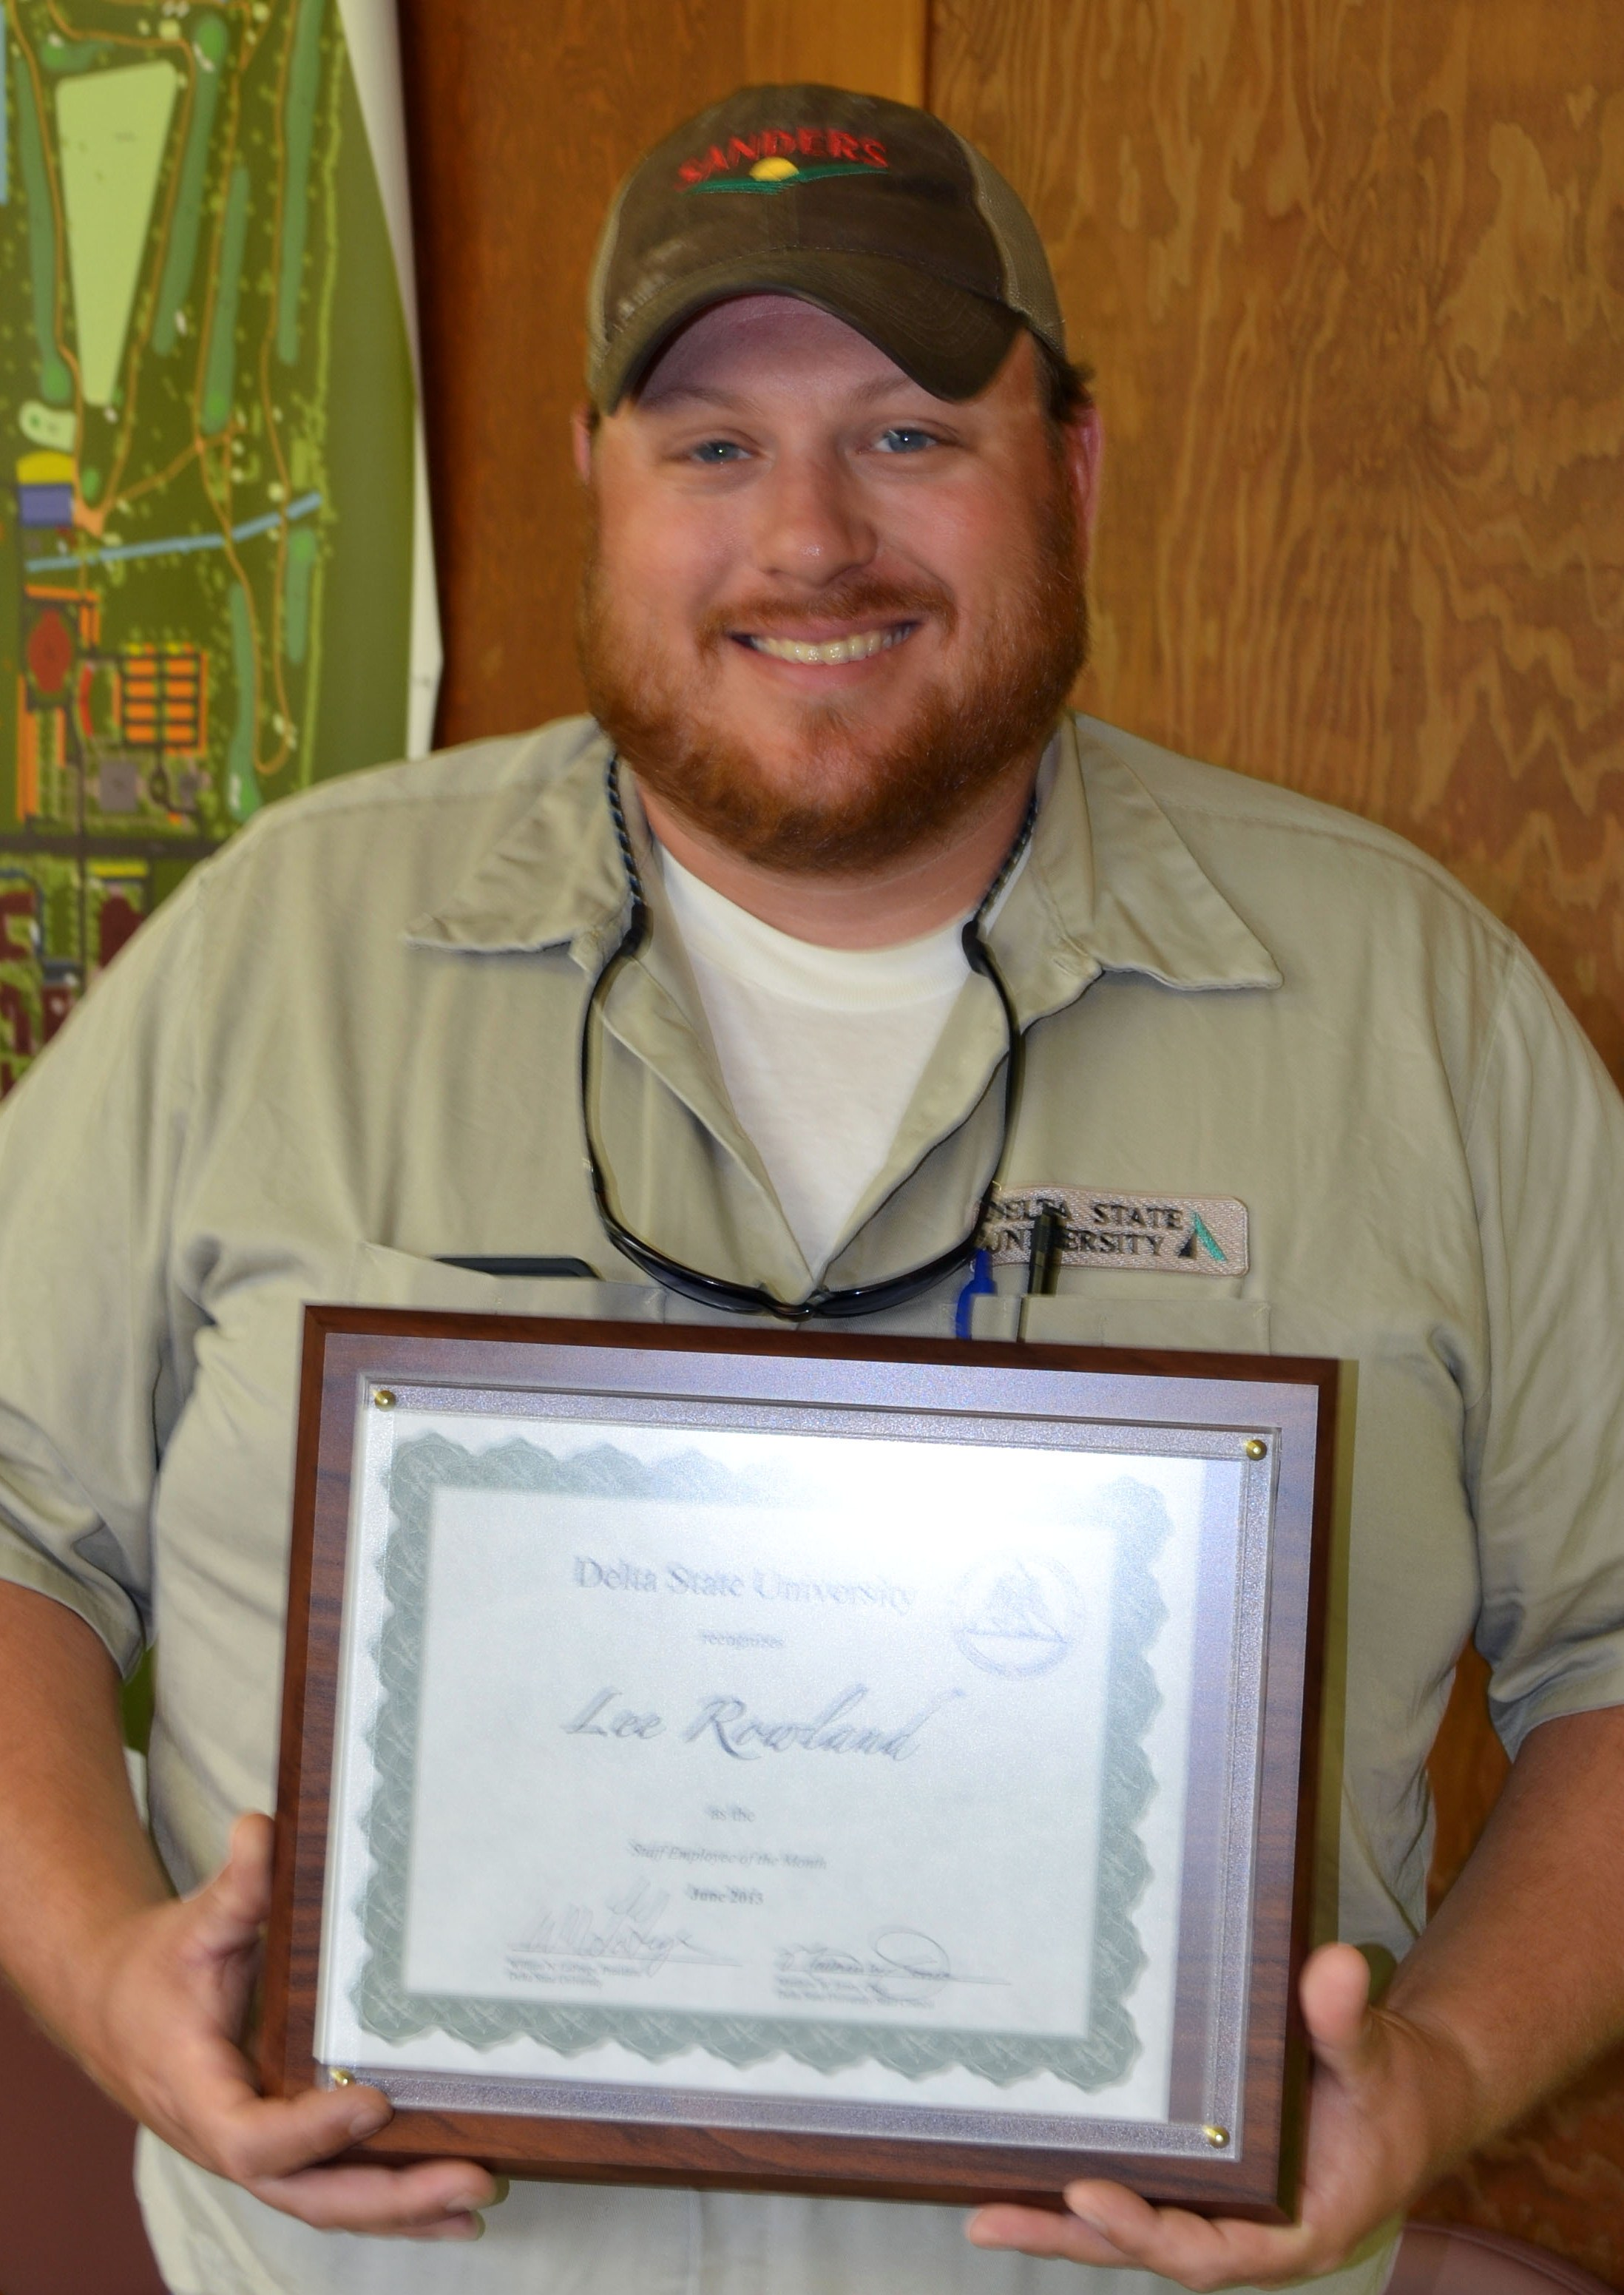 Rowland receives recognition for exceptional service to Delta State.